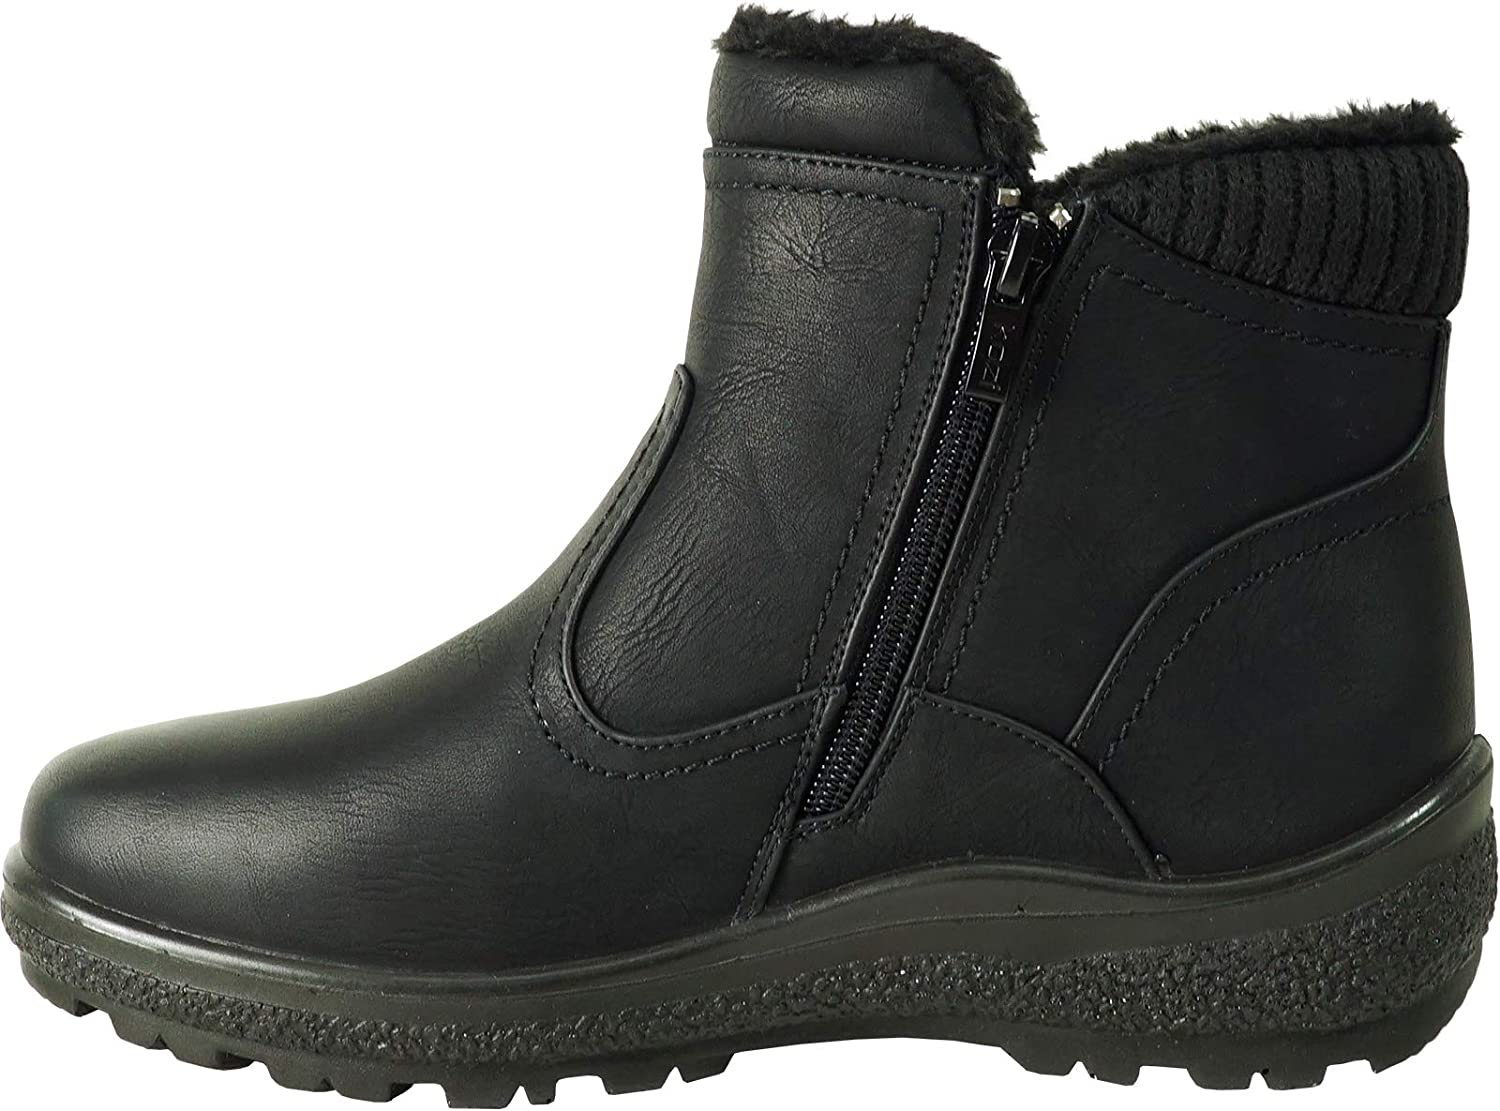 kozi Canada Women Casual Ankle to Mid Calf Winter Boot Karla and NINA Fur Boot with Zipper Black